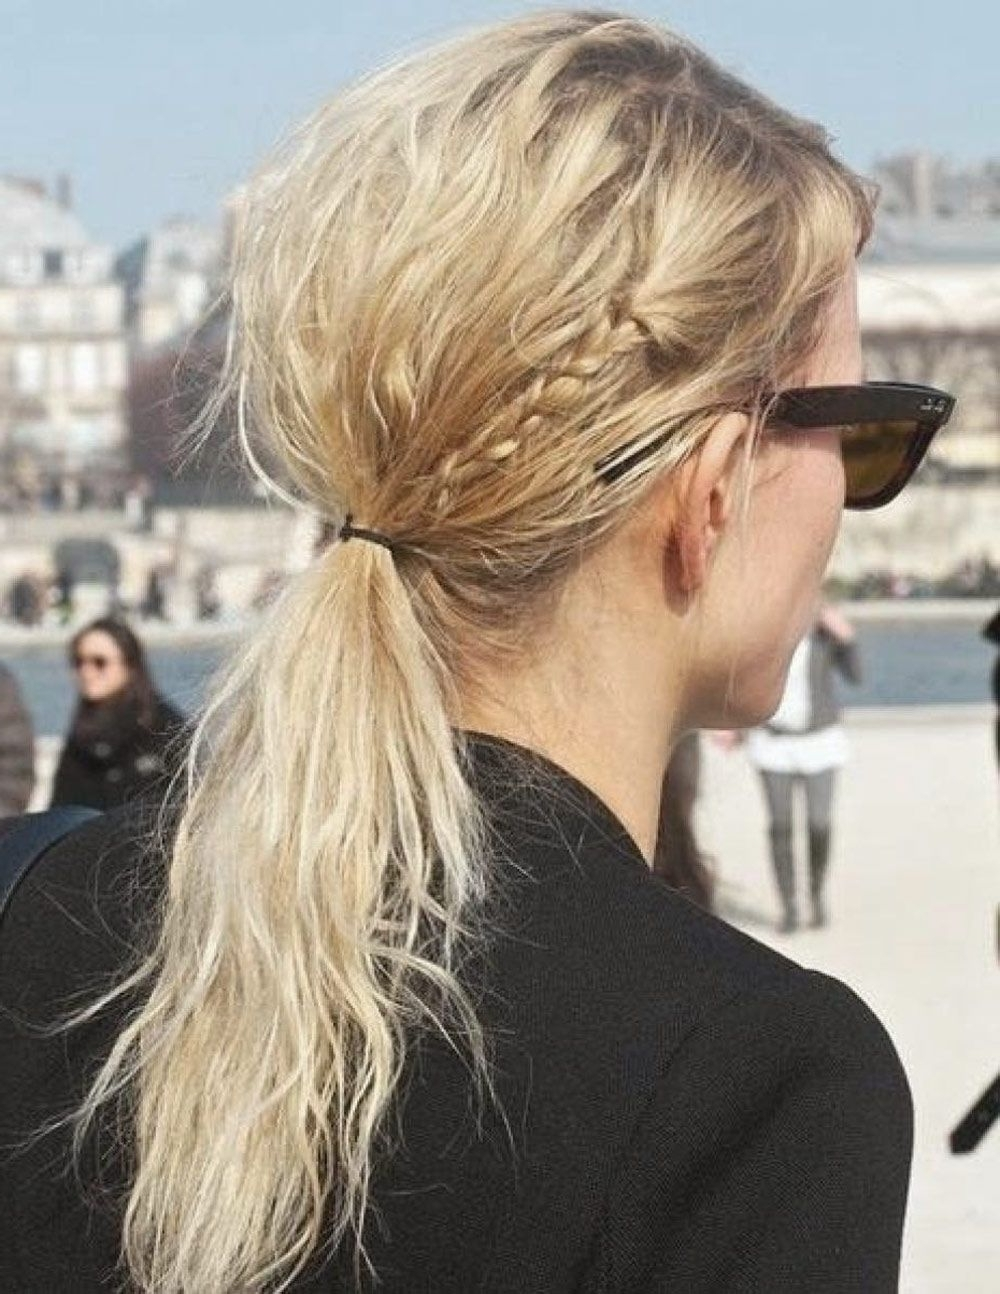 Bun Hair, Hair Inspiration And Messy Ponytail Within Recent Messy Low Ponytail Hairstyles (View 5 of 20)